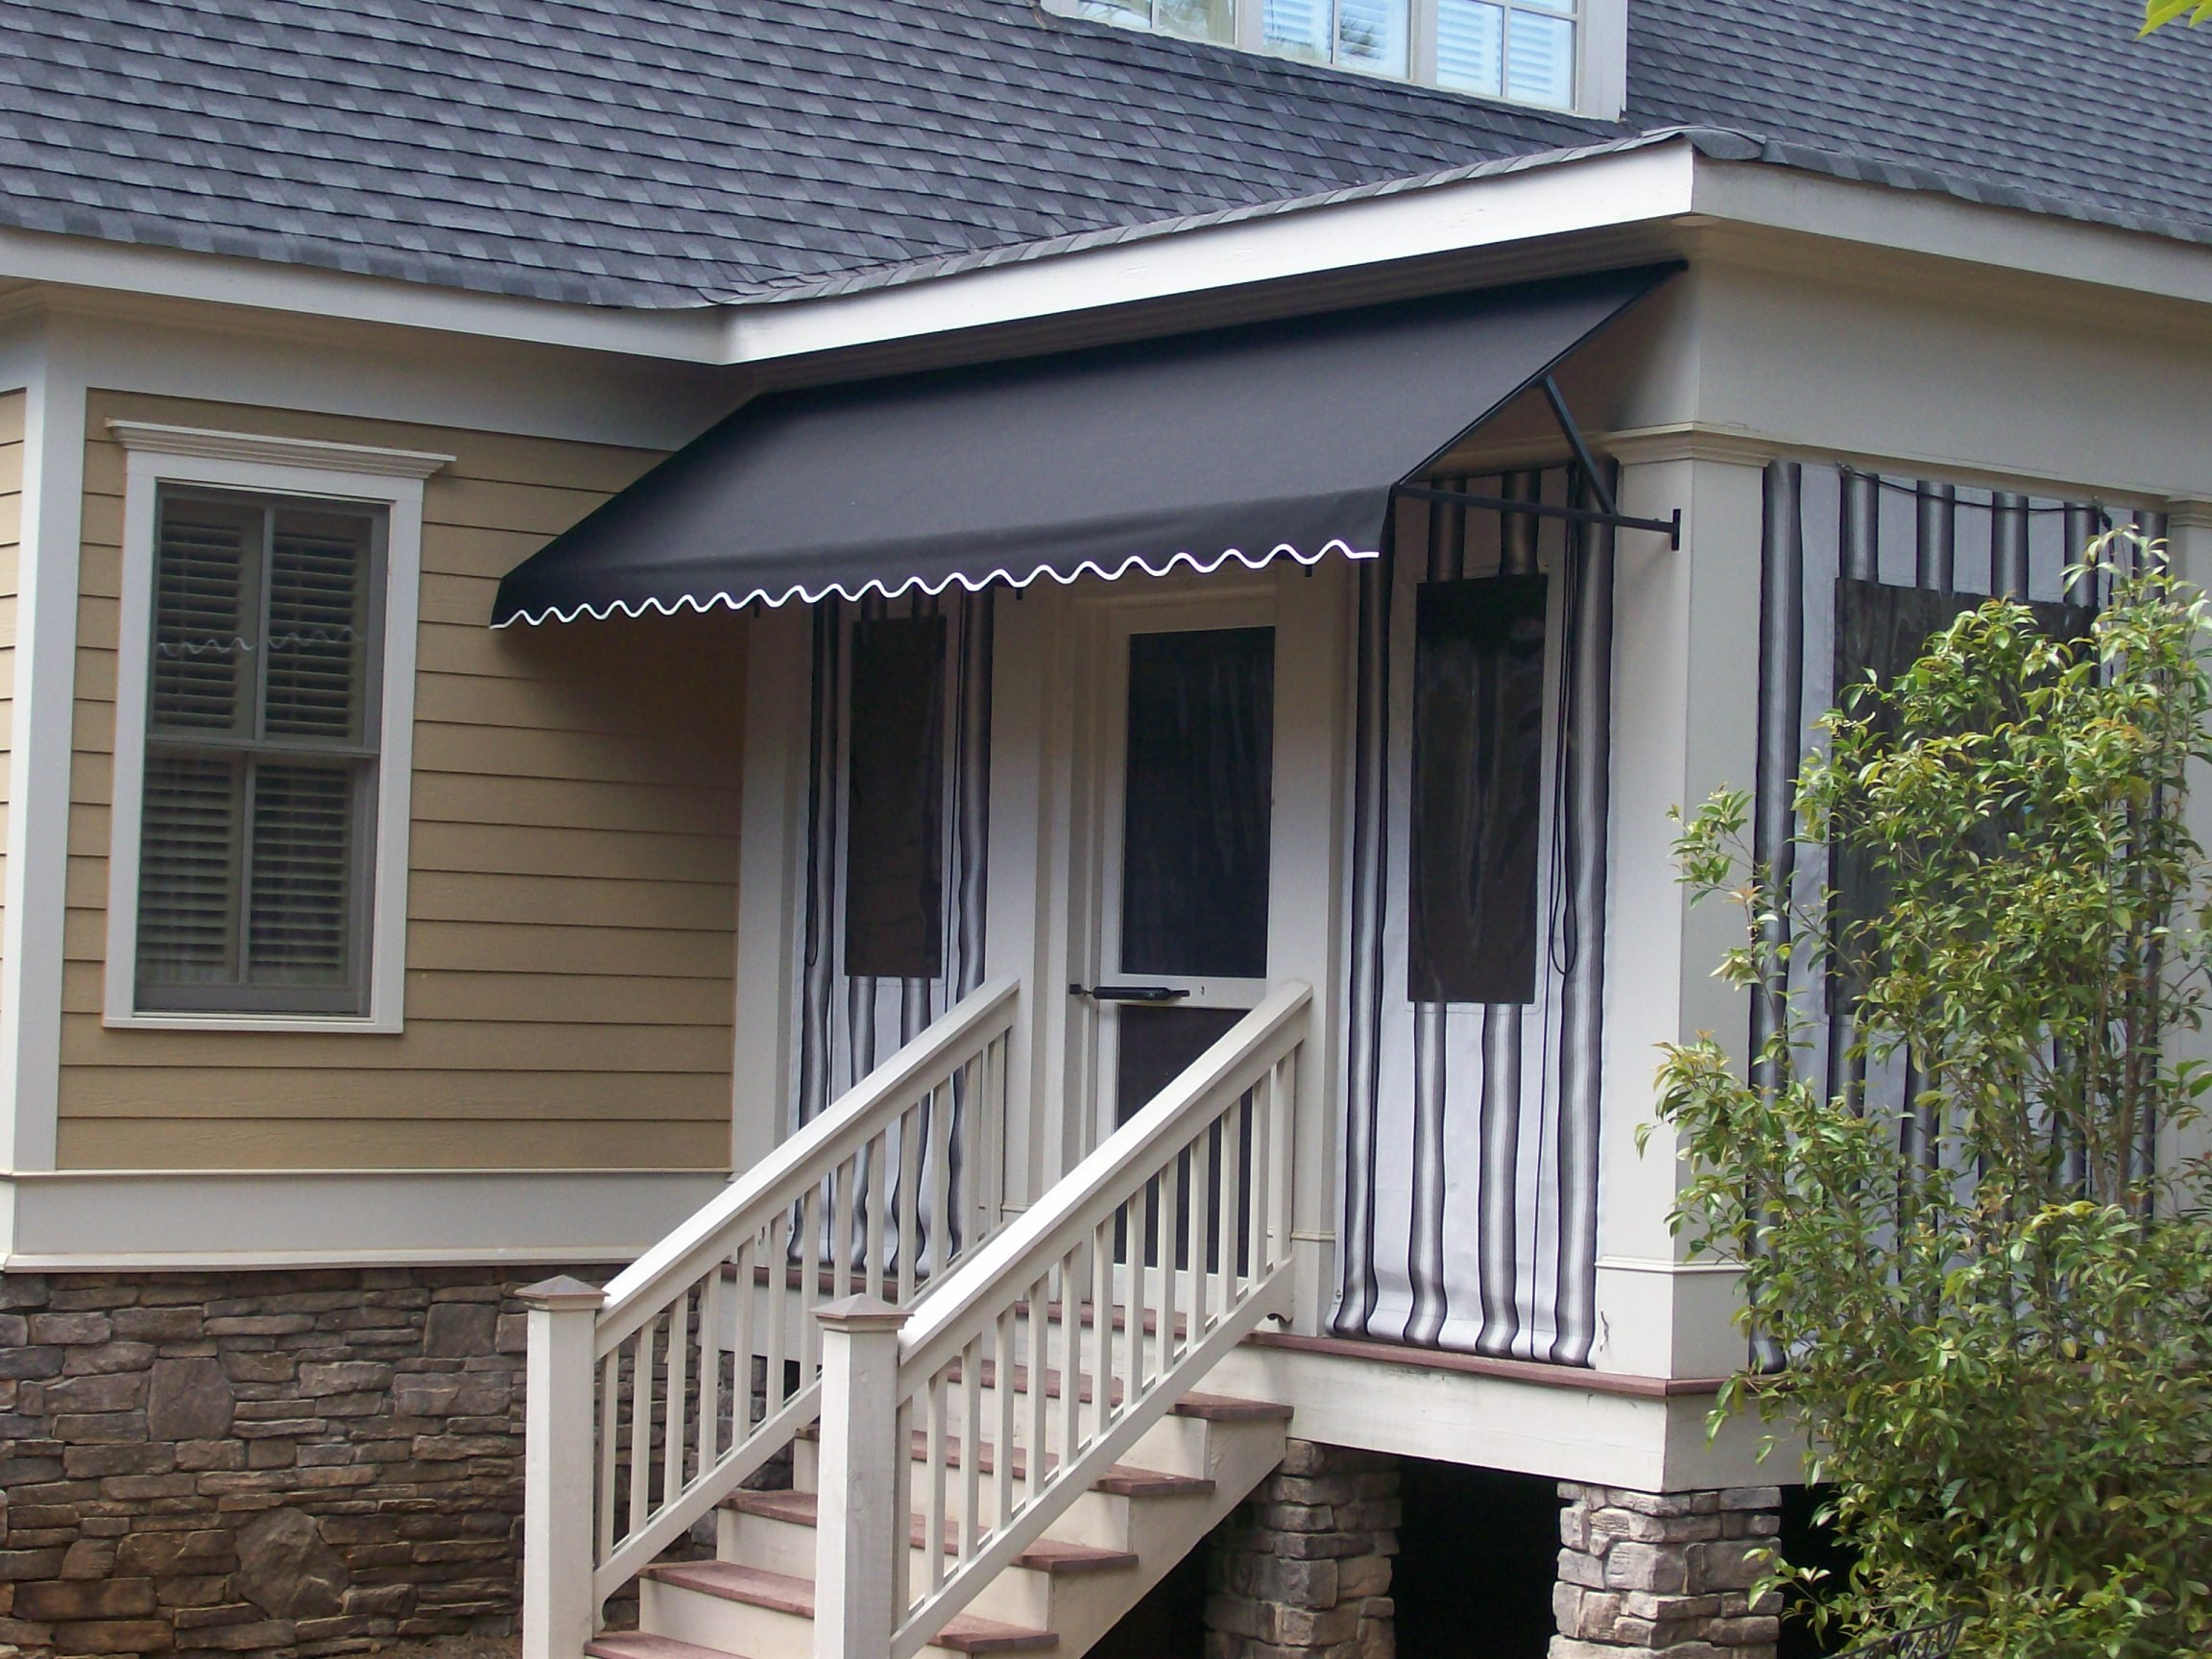 Standard Awning with Open Sides